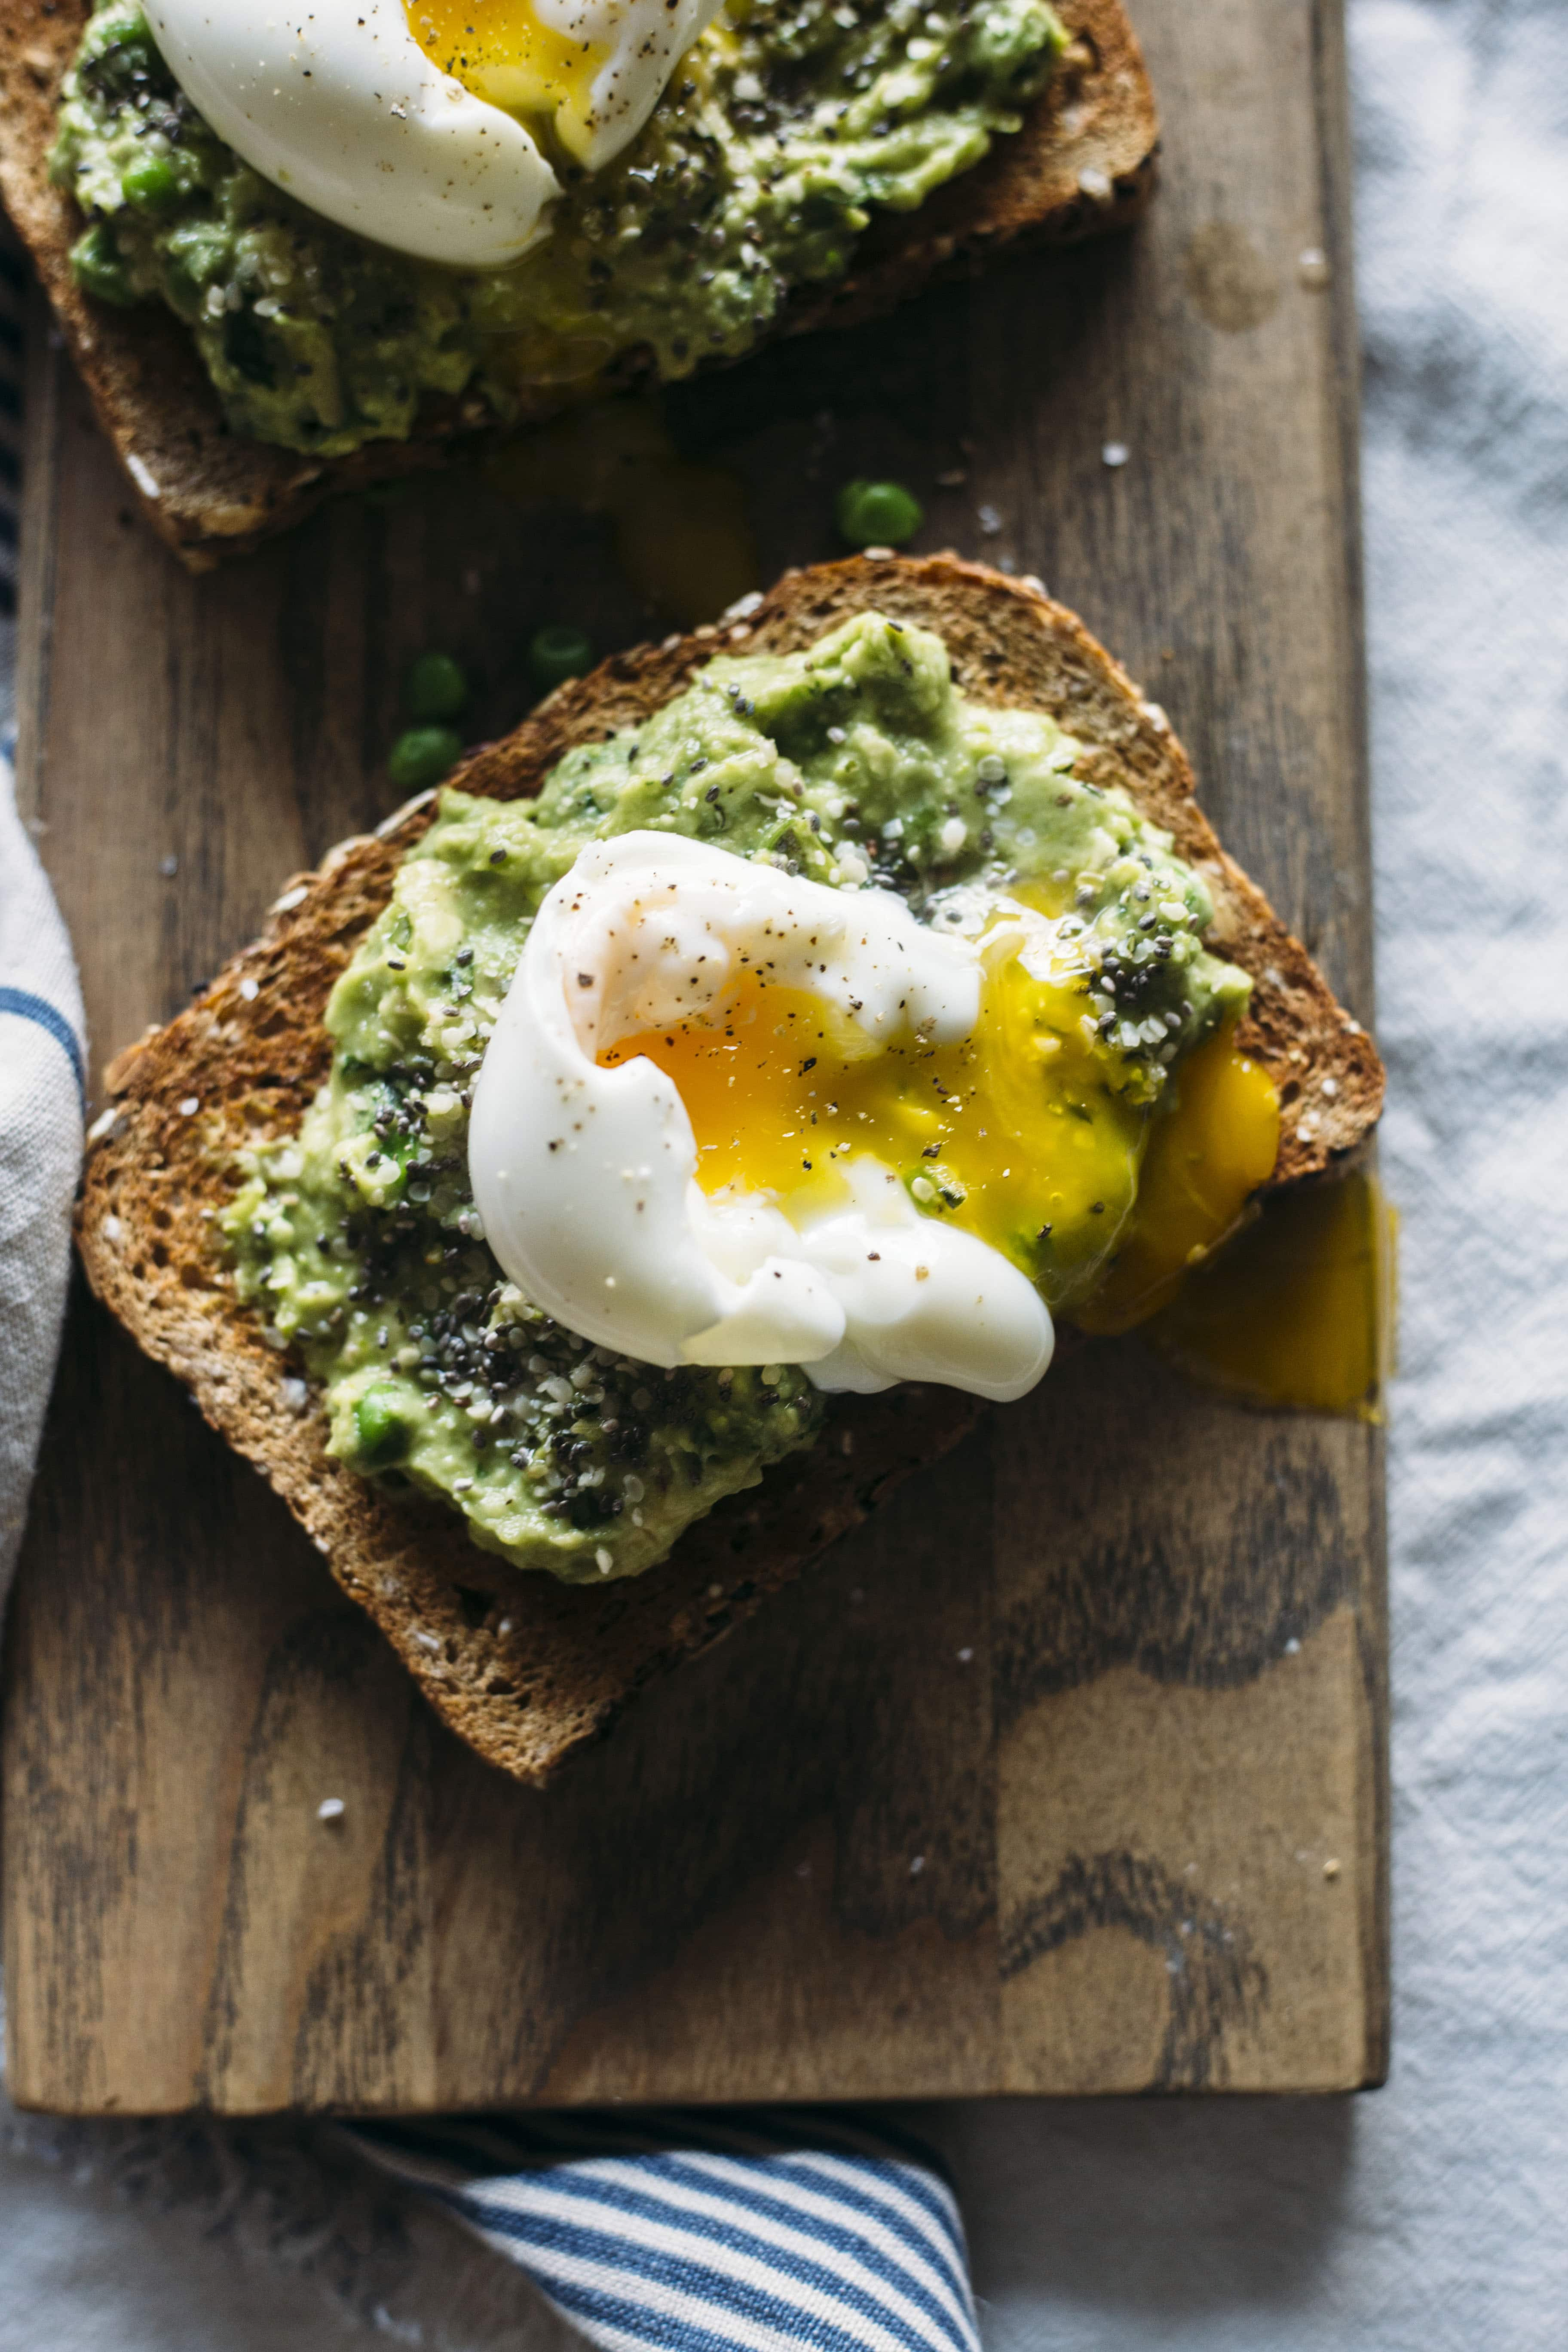 Superfood Toast | This toast is topped with superfoods like chia and hemp seeds and a tasty avocado pea mash, aka the perfect breakfast | thealmondeater.com